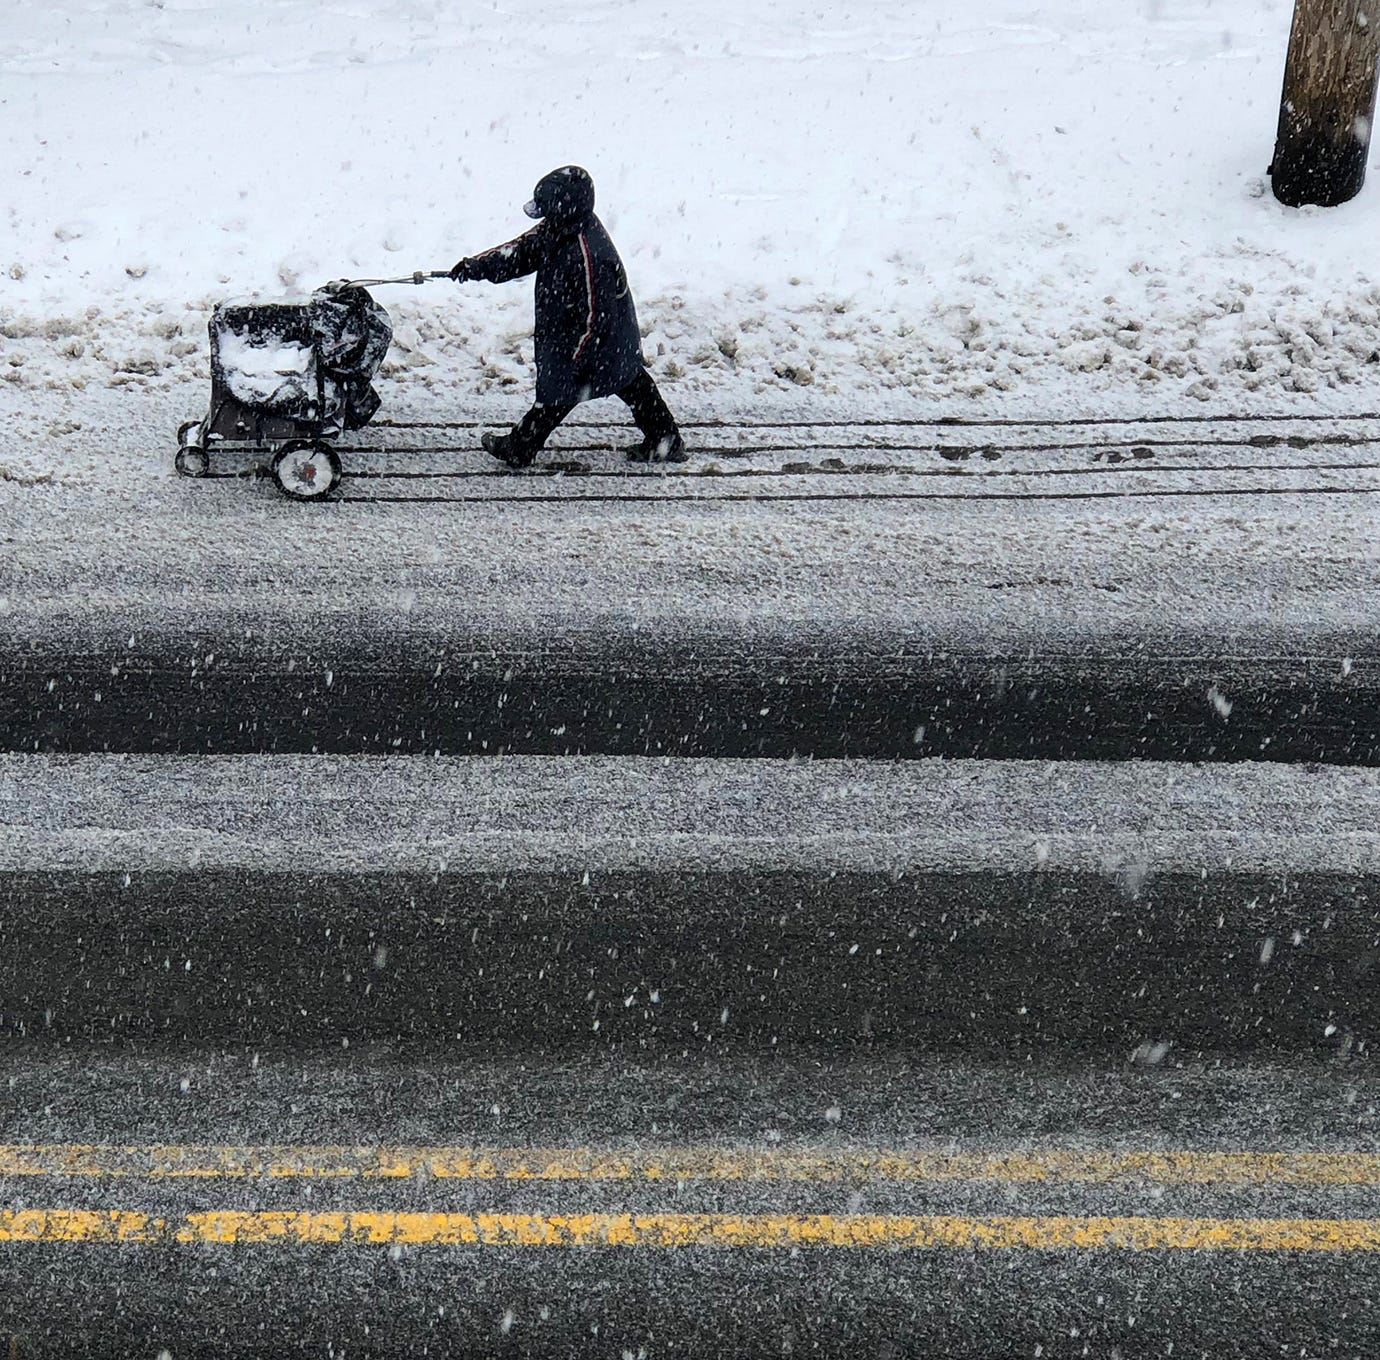 North Jersey preps for the snowstorm, but the rest of the state seems spared